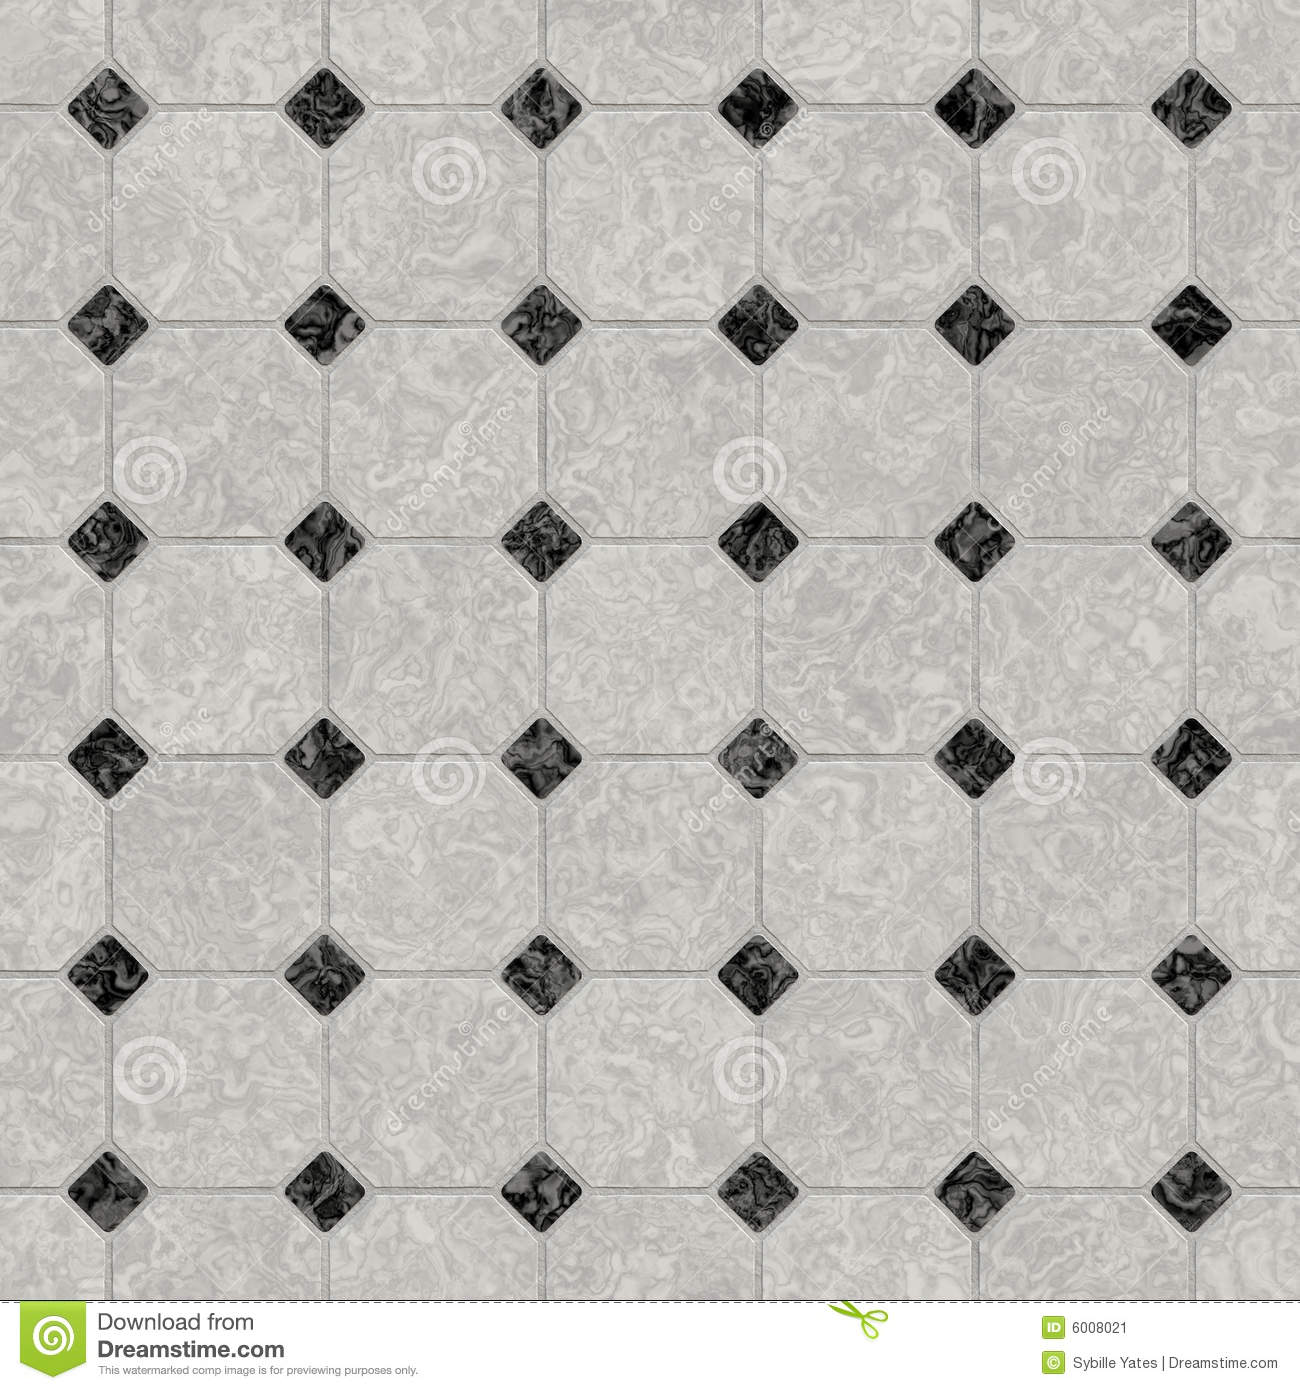 Elegant black and white marble floor. Elegant Black And White Marble Floor Stock Image   Image  6008021